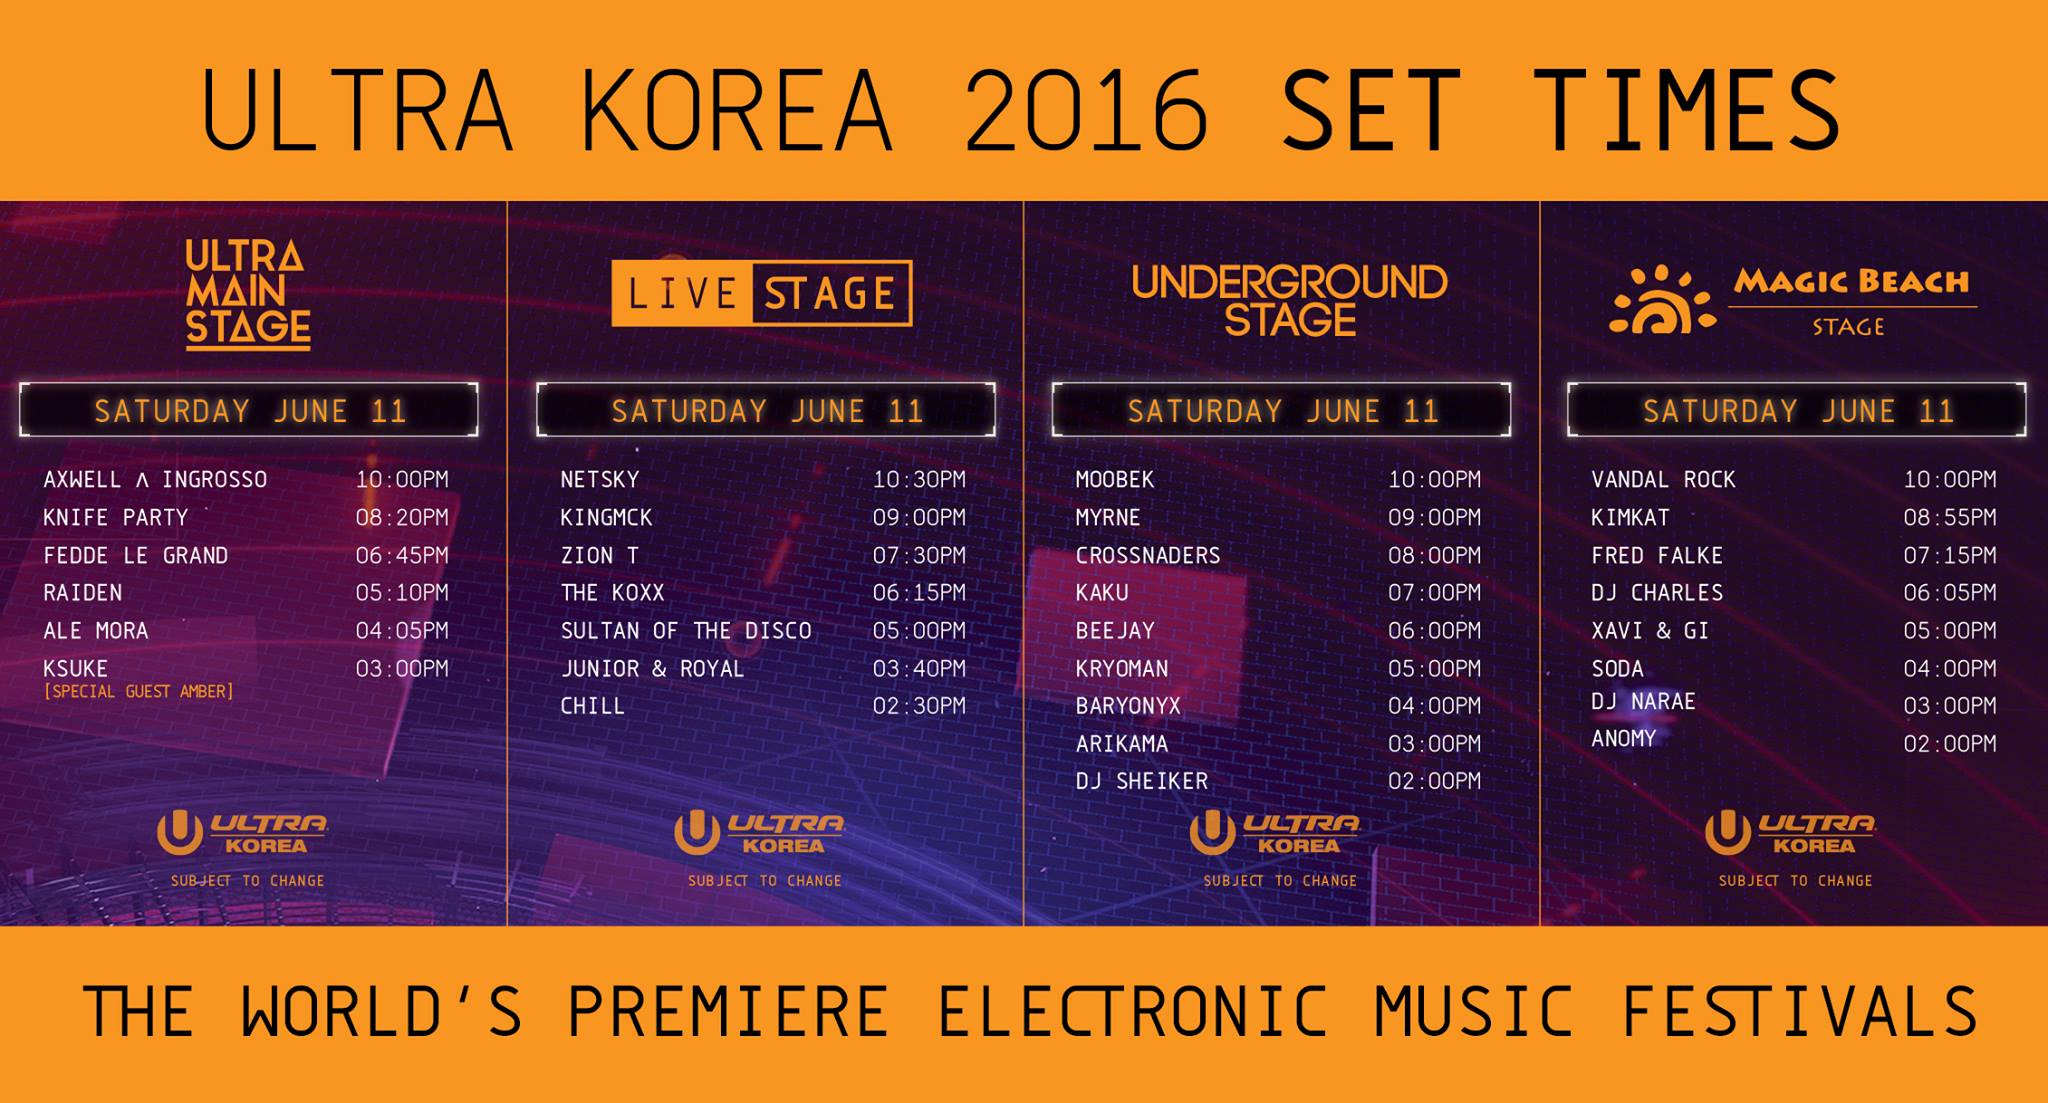 ULTRA KOREA 2016 Saturday